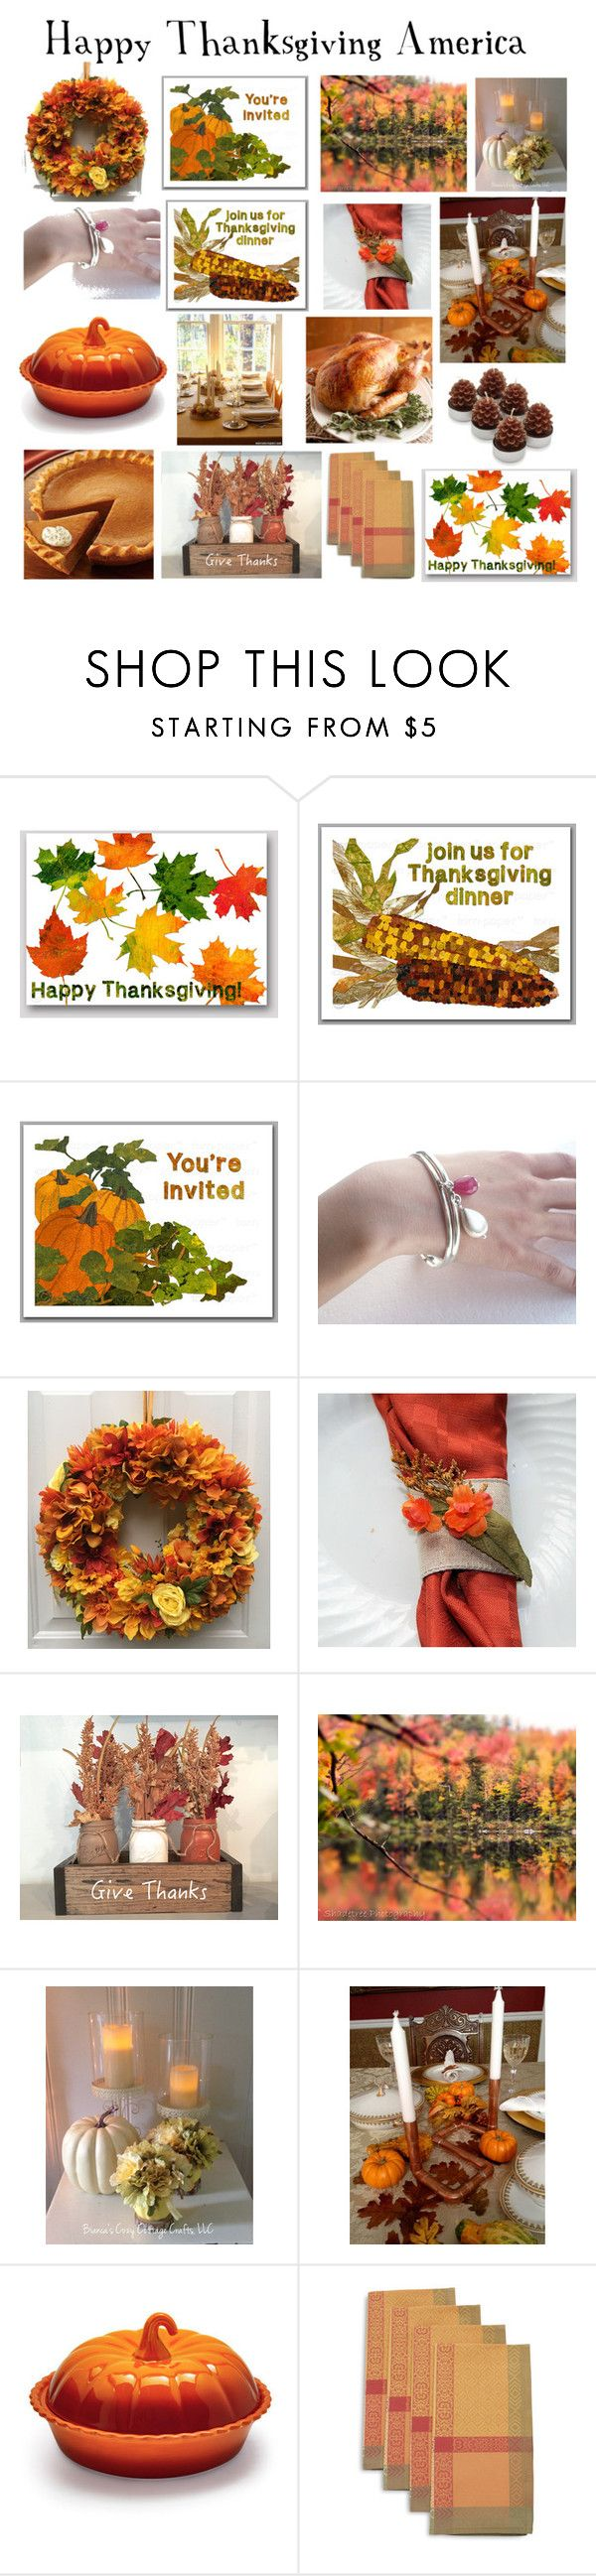 """""""Happy Thanksgiving America"""" by belladonnasjoy ❤ liked on Polyvore featuring interior, interiors, interior design, home, home decor, interior decorating, Hostess, Sur La Table, america and happy"""